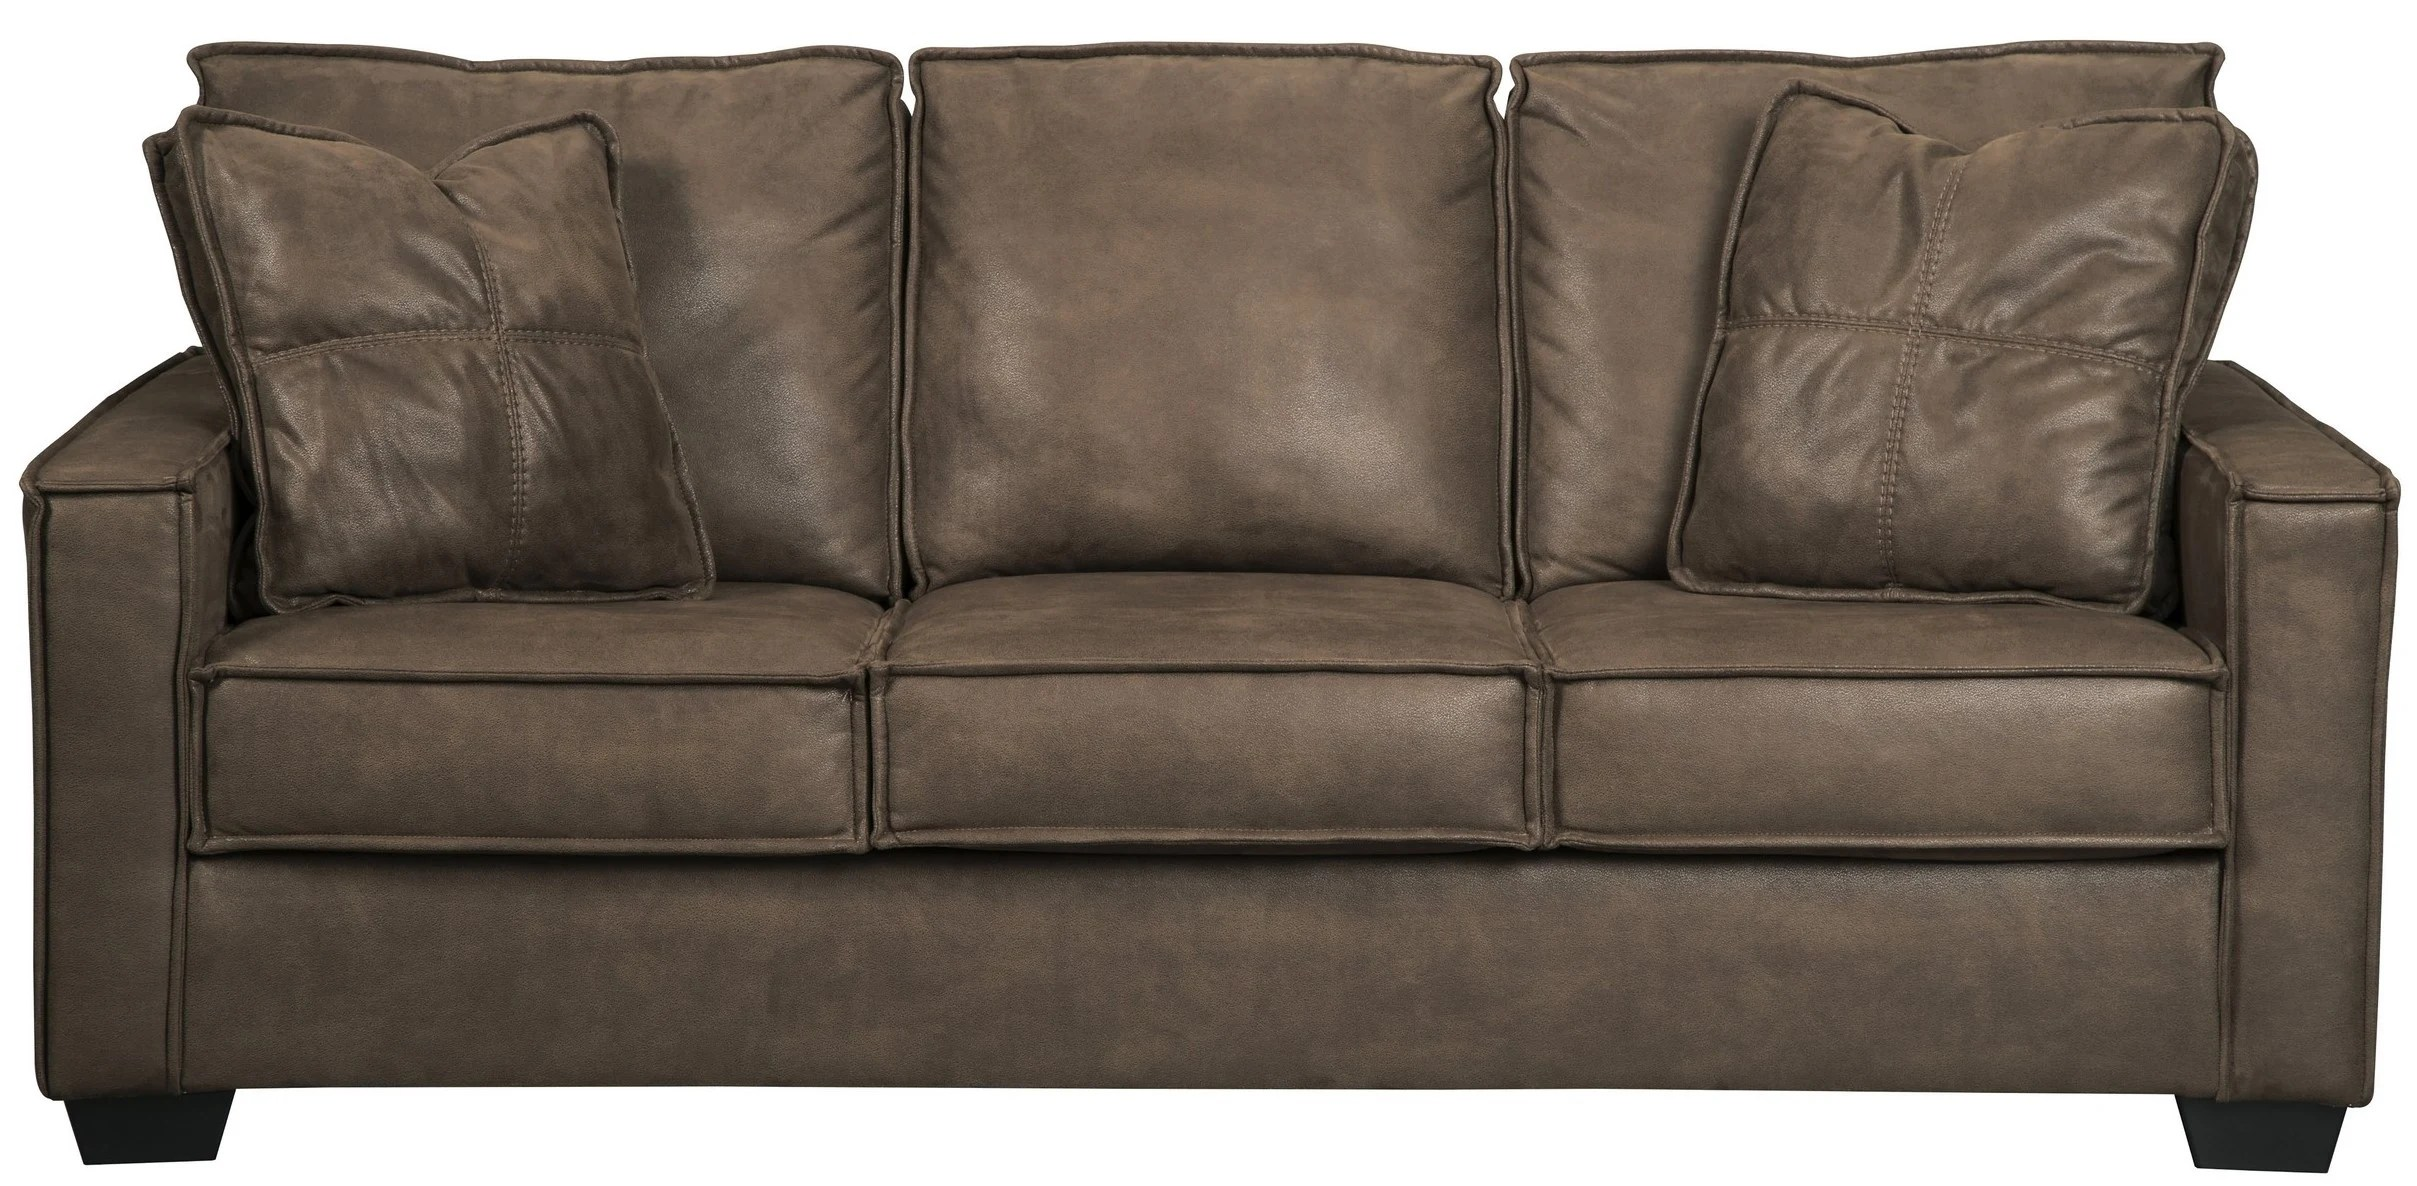 ashley faux leather sofa reviews littlewoods bed signature design by terrington harness 9290338